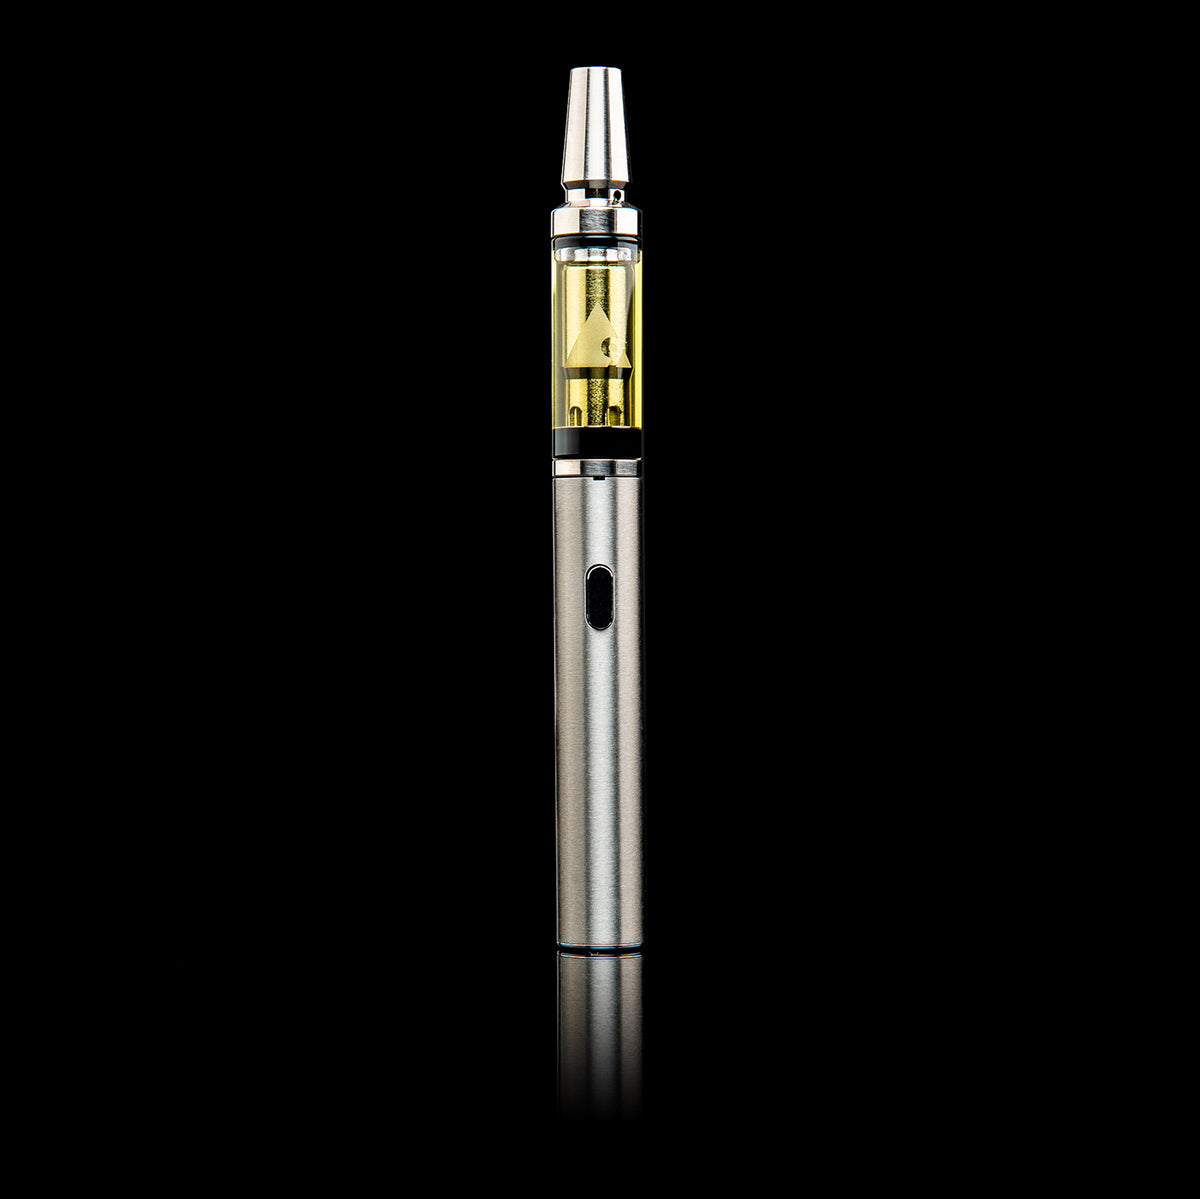 DELTA VAPE 2 0 | BATTERY - Delta 9 Labs